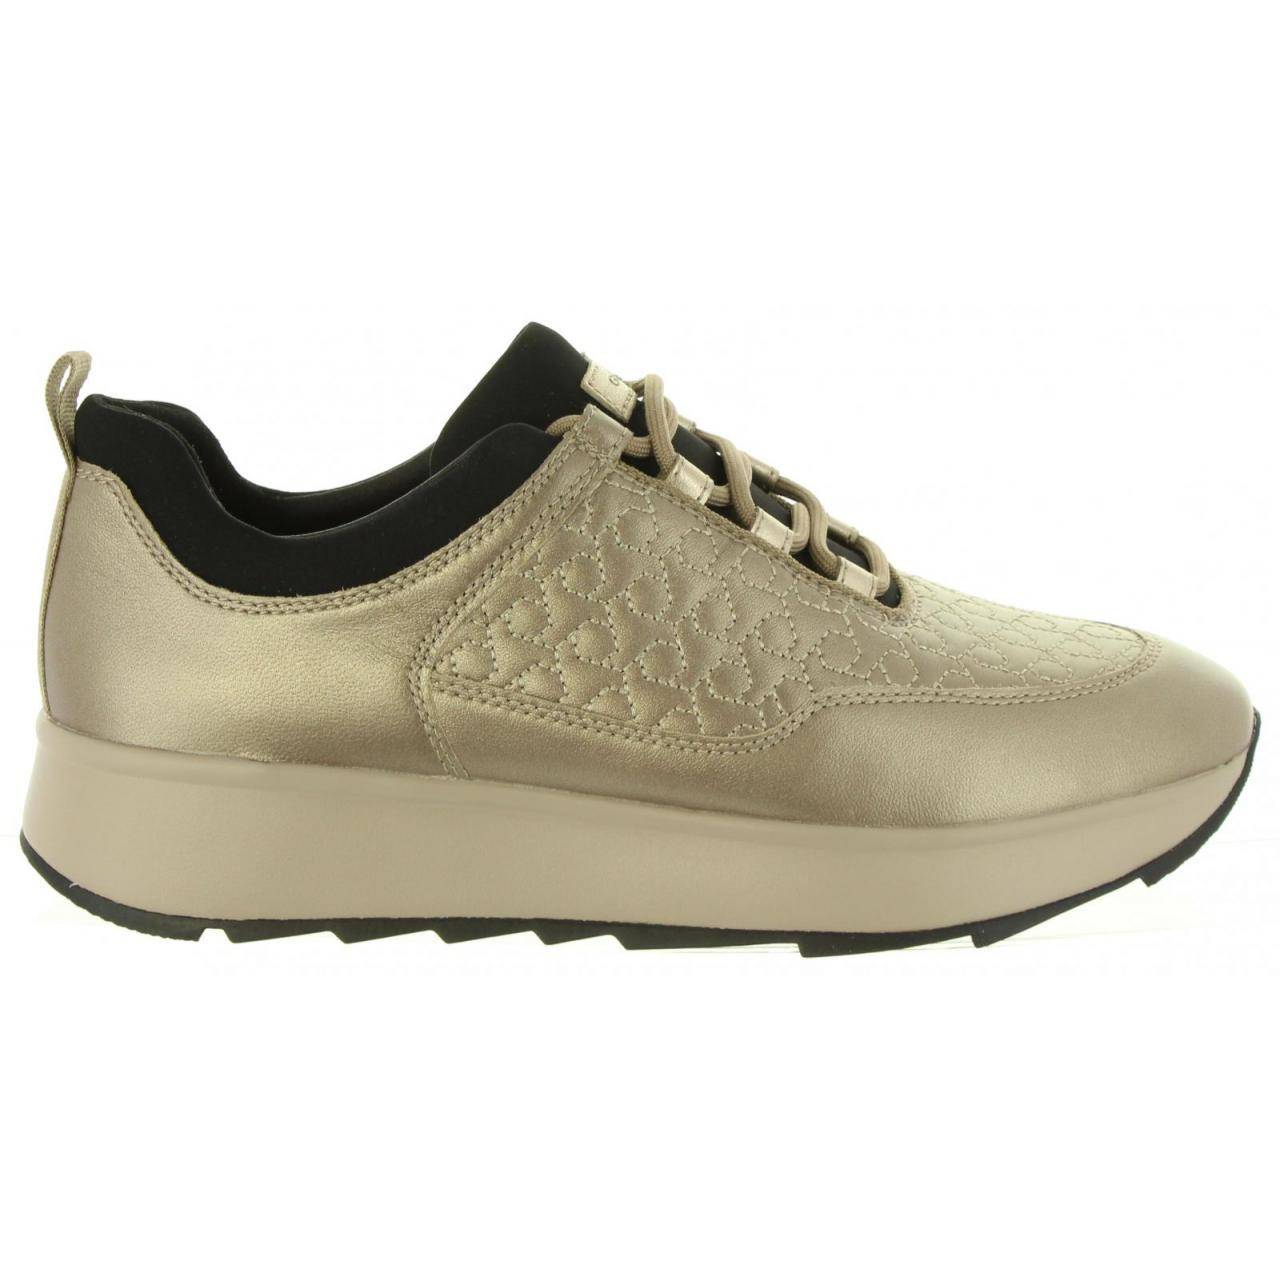 Molesto robo collar  Sports-shoes-woman-GEOX-D845TC 0BVNF D GENDRY-C9HQ6 LEAD-TAUPE